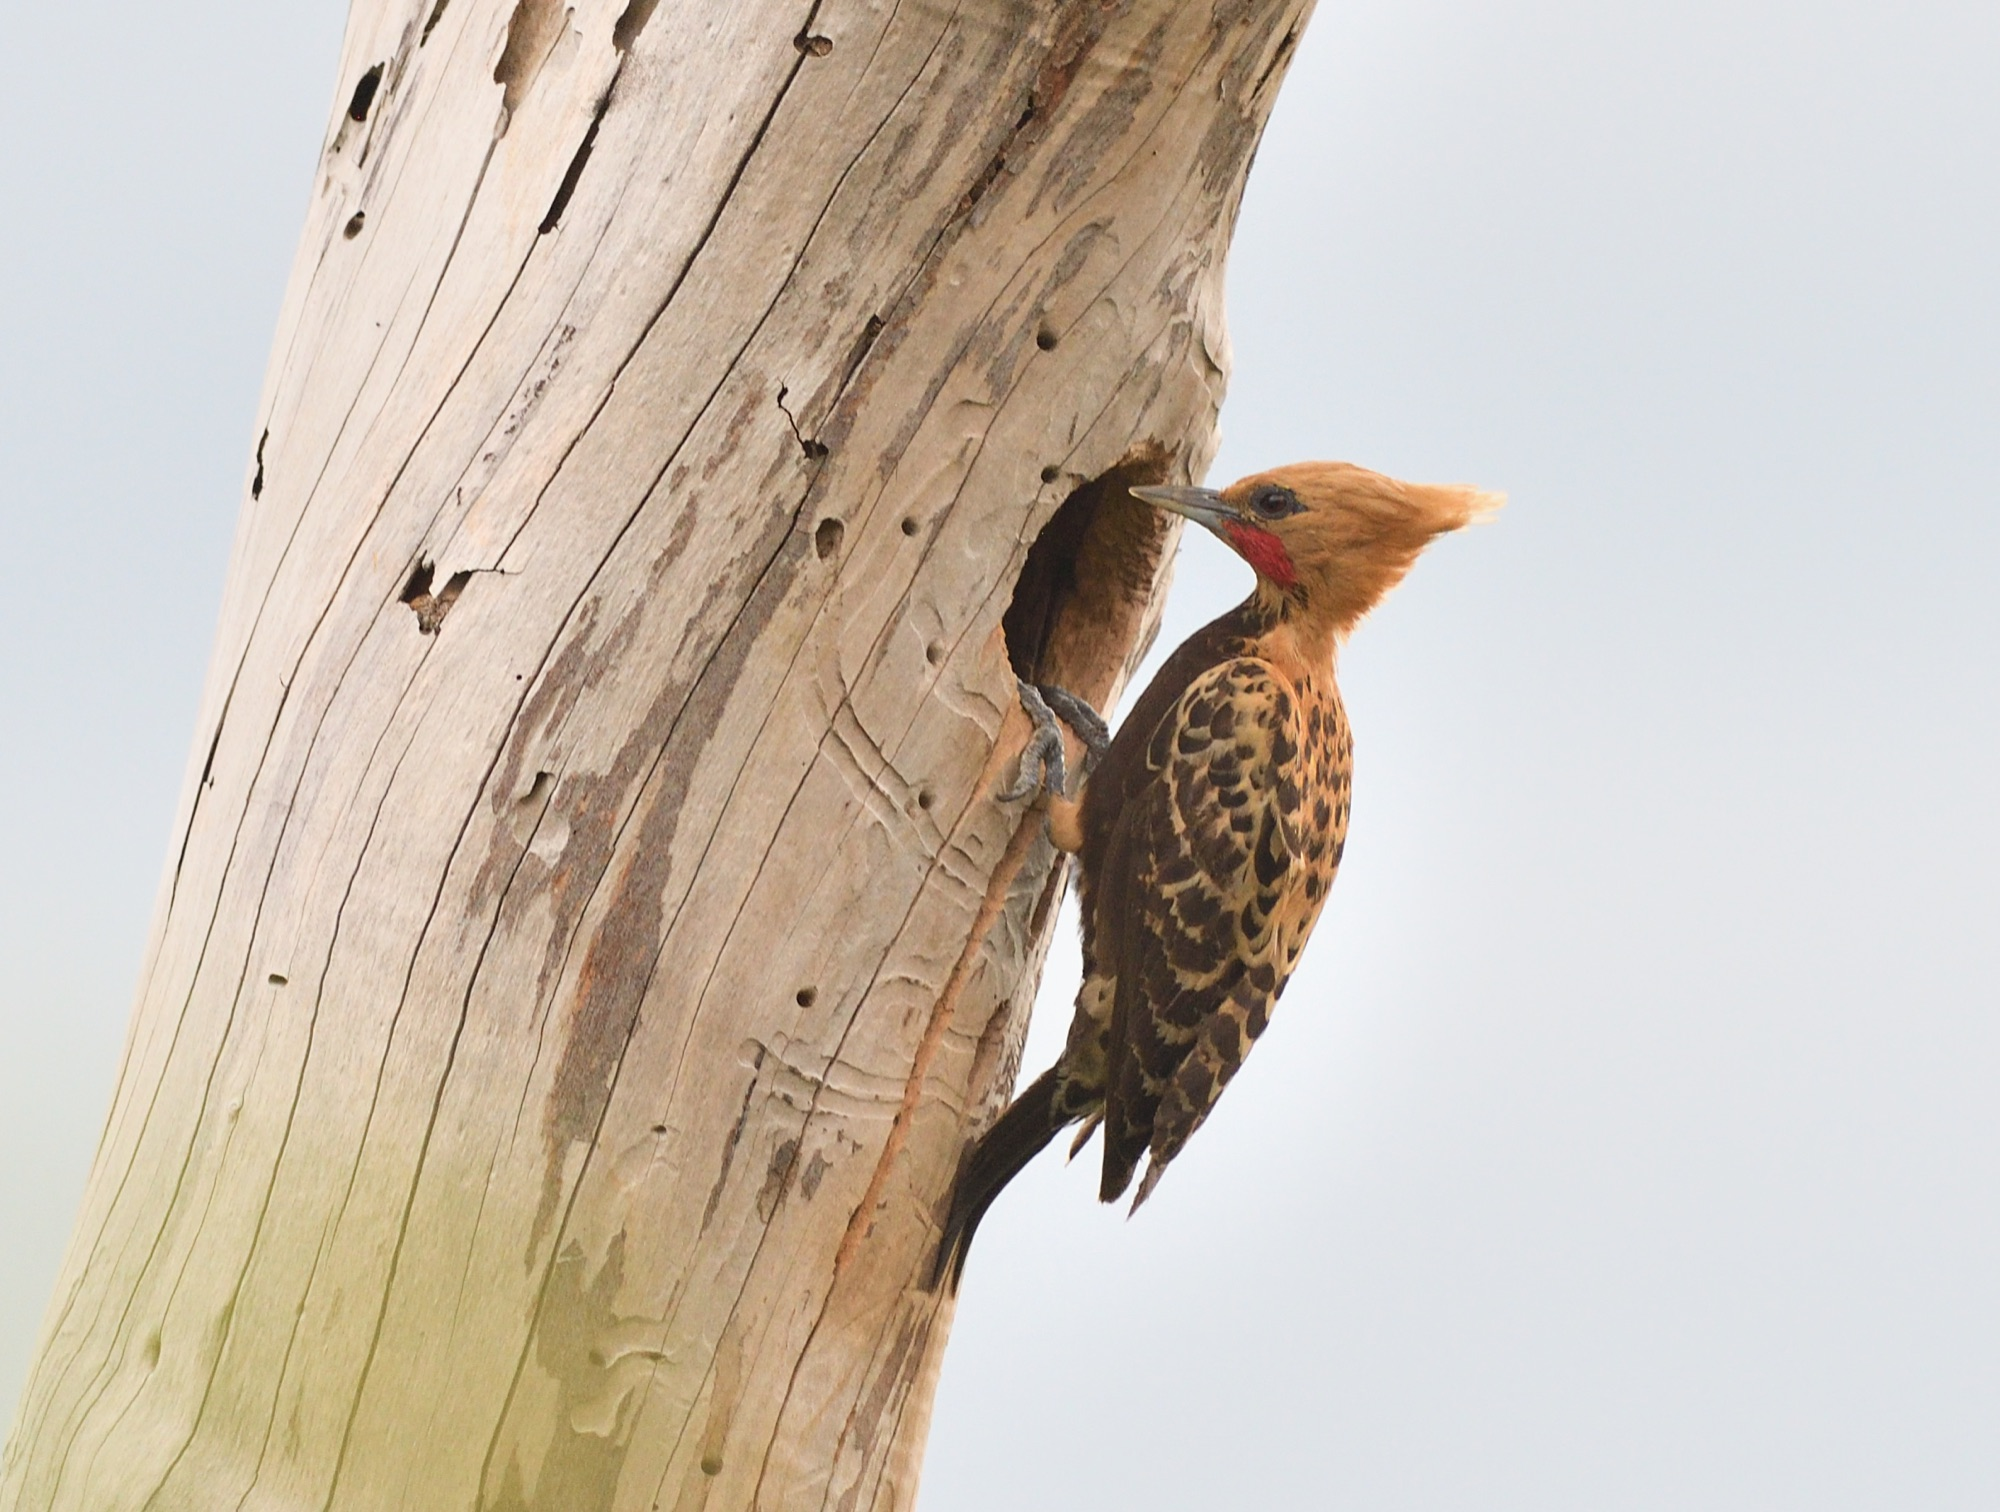 Ochre-backed Woodpecker 2 - Serra de Araripe, NE Brazil 2019_00034